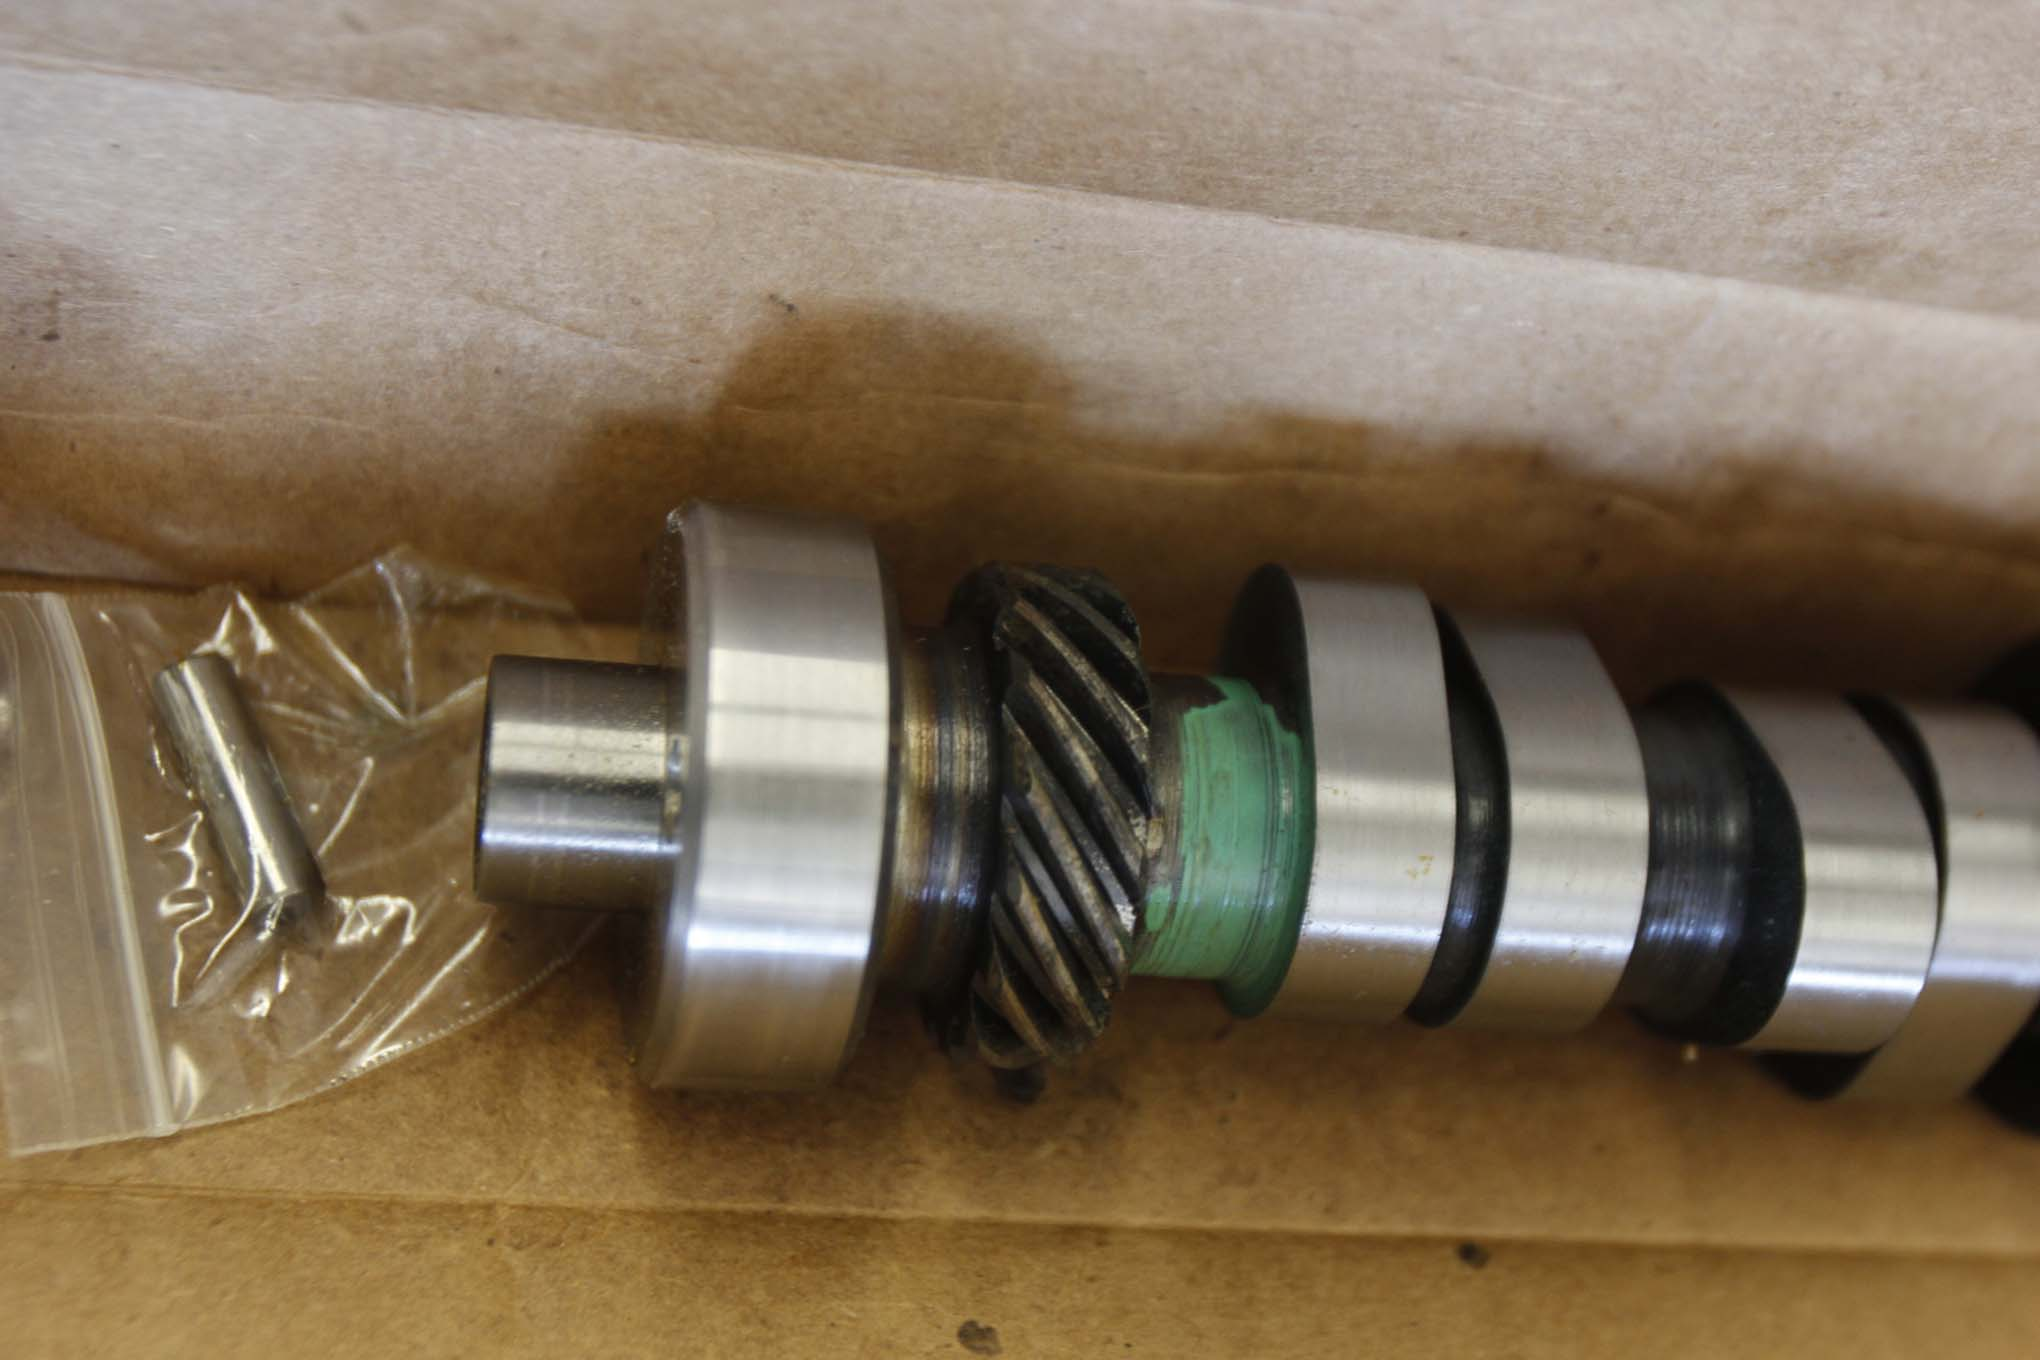 Dollar for dollar, the biggest change in engine performance comes from changing the cam. We chose this hydraulic roller cam from Ford Performance that offers 224 degrees duration at 0.050, 0.480-inch lift with 1.6:1 rocker arms (which is the stock ratio). Known as the B303 cam, it's made from an austempered ductile iron billet core, not steel, so a coated, hardened distributor gear is compatible.